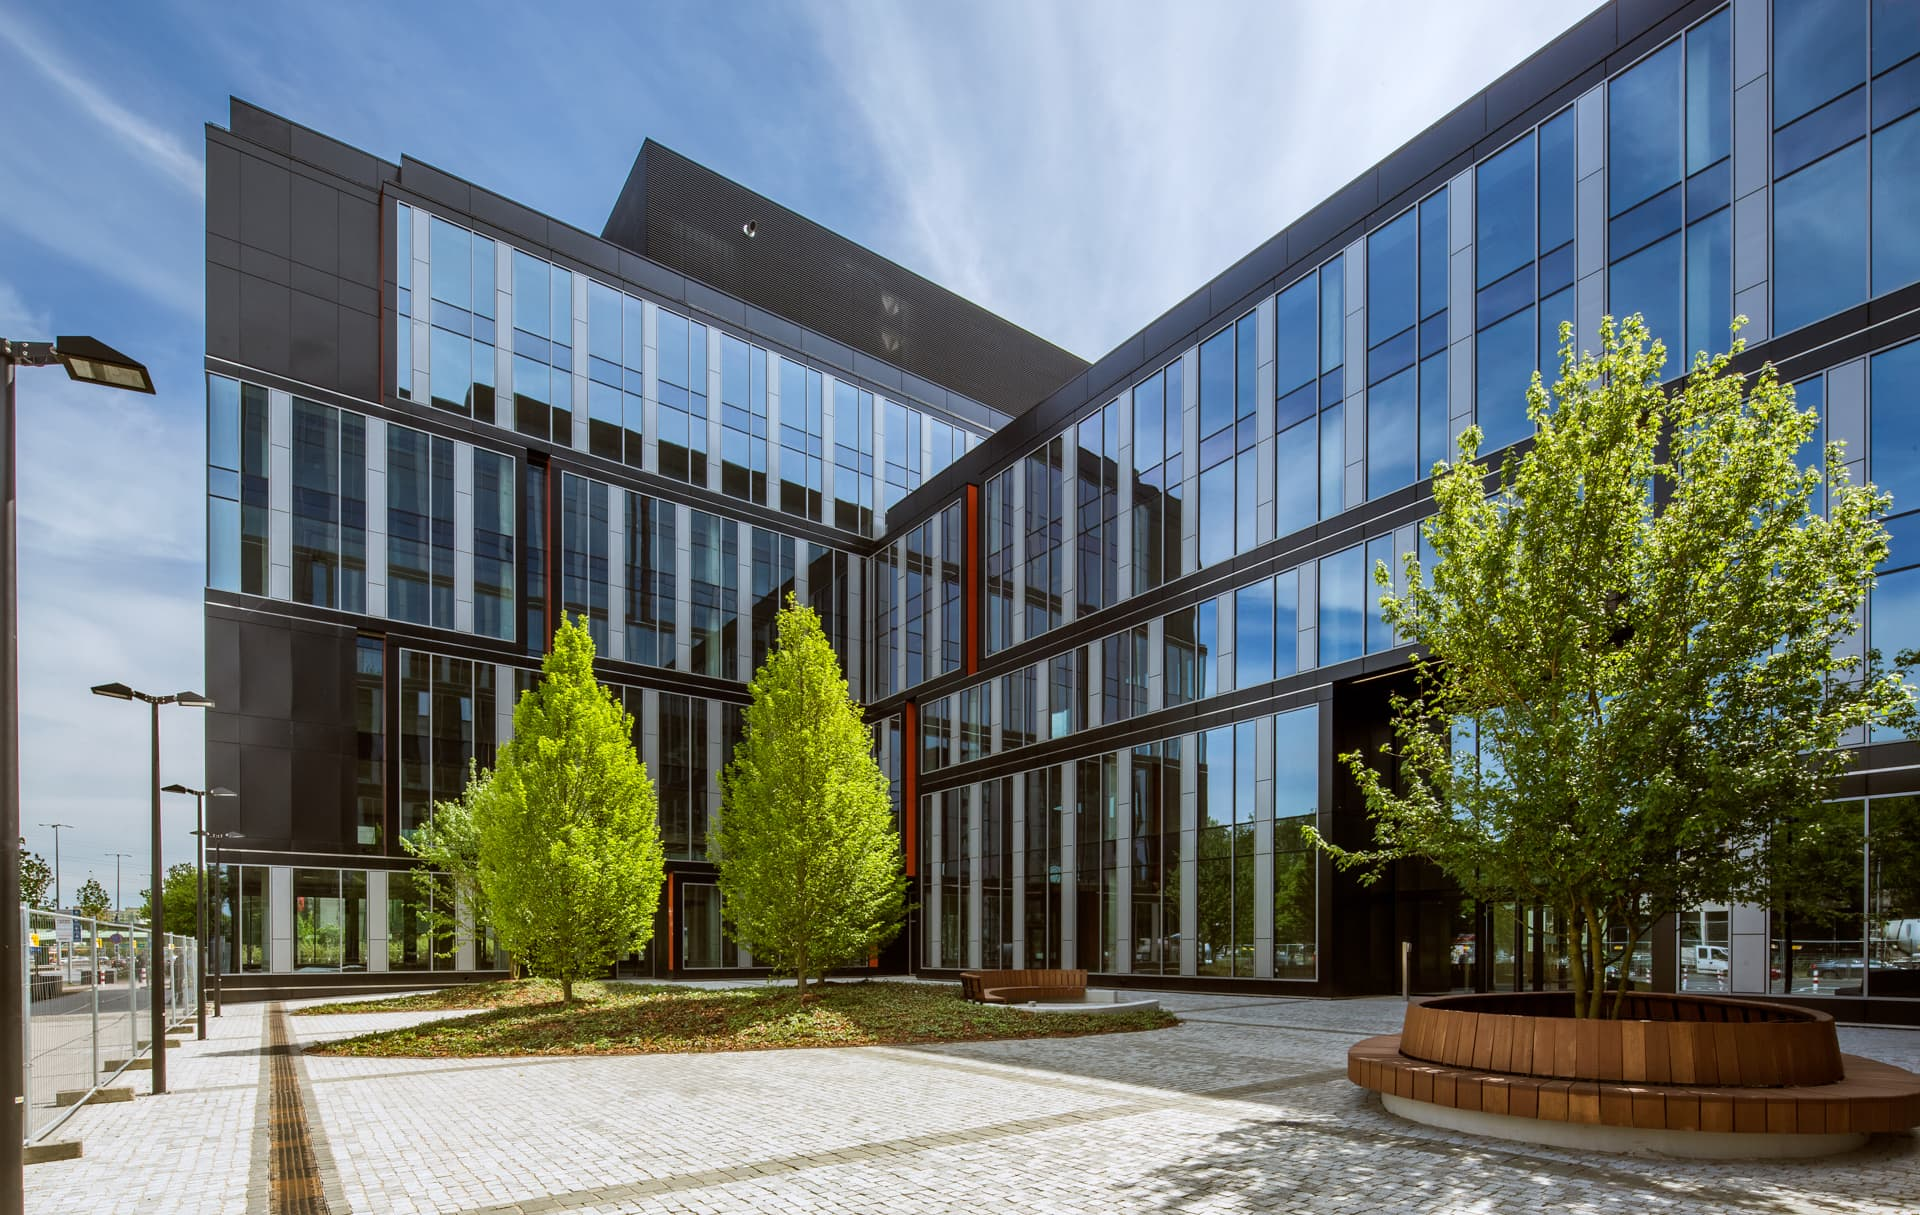 Astrazeneca Renews Lease At Postepu 14 And Takes Additional Space